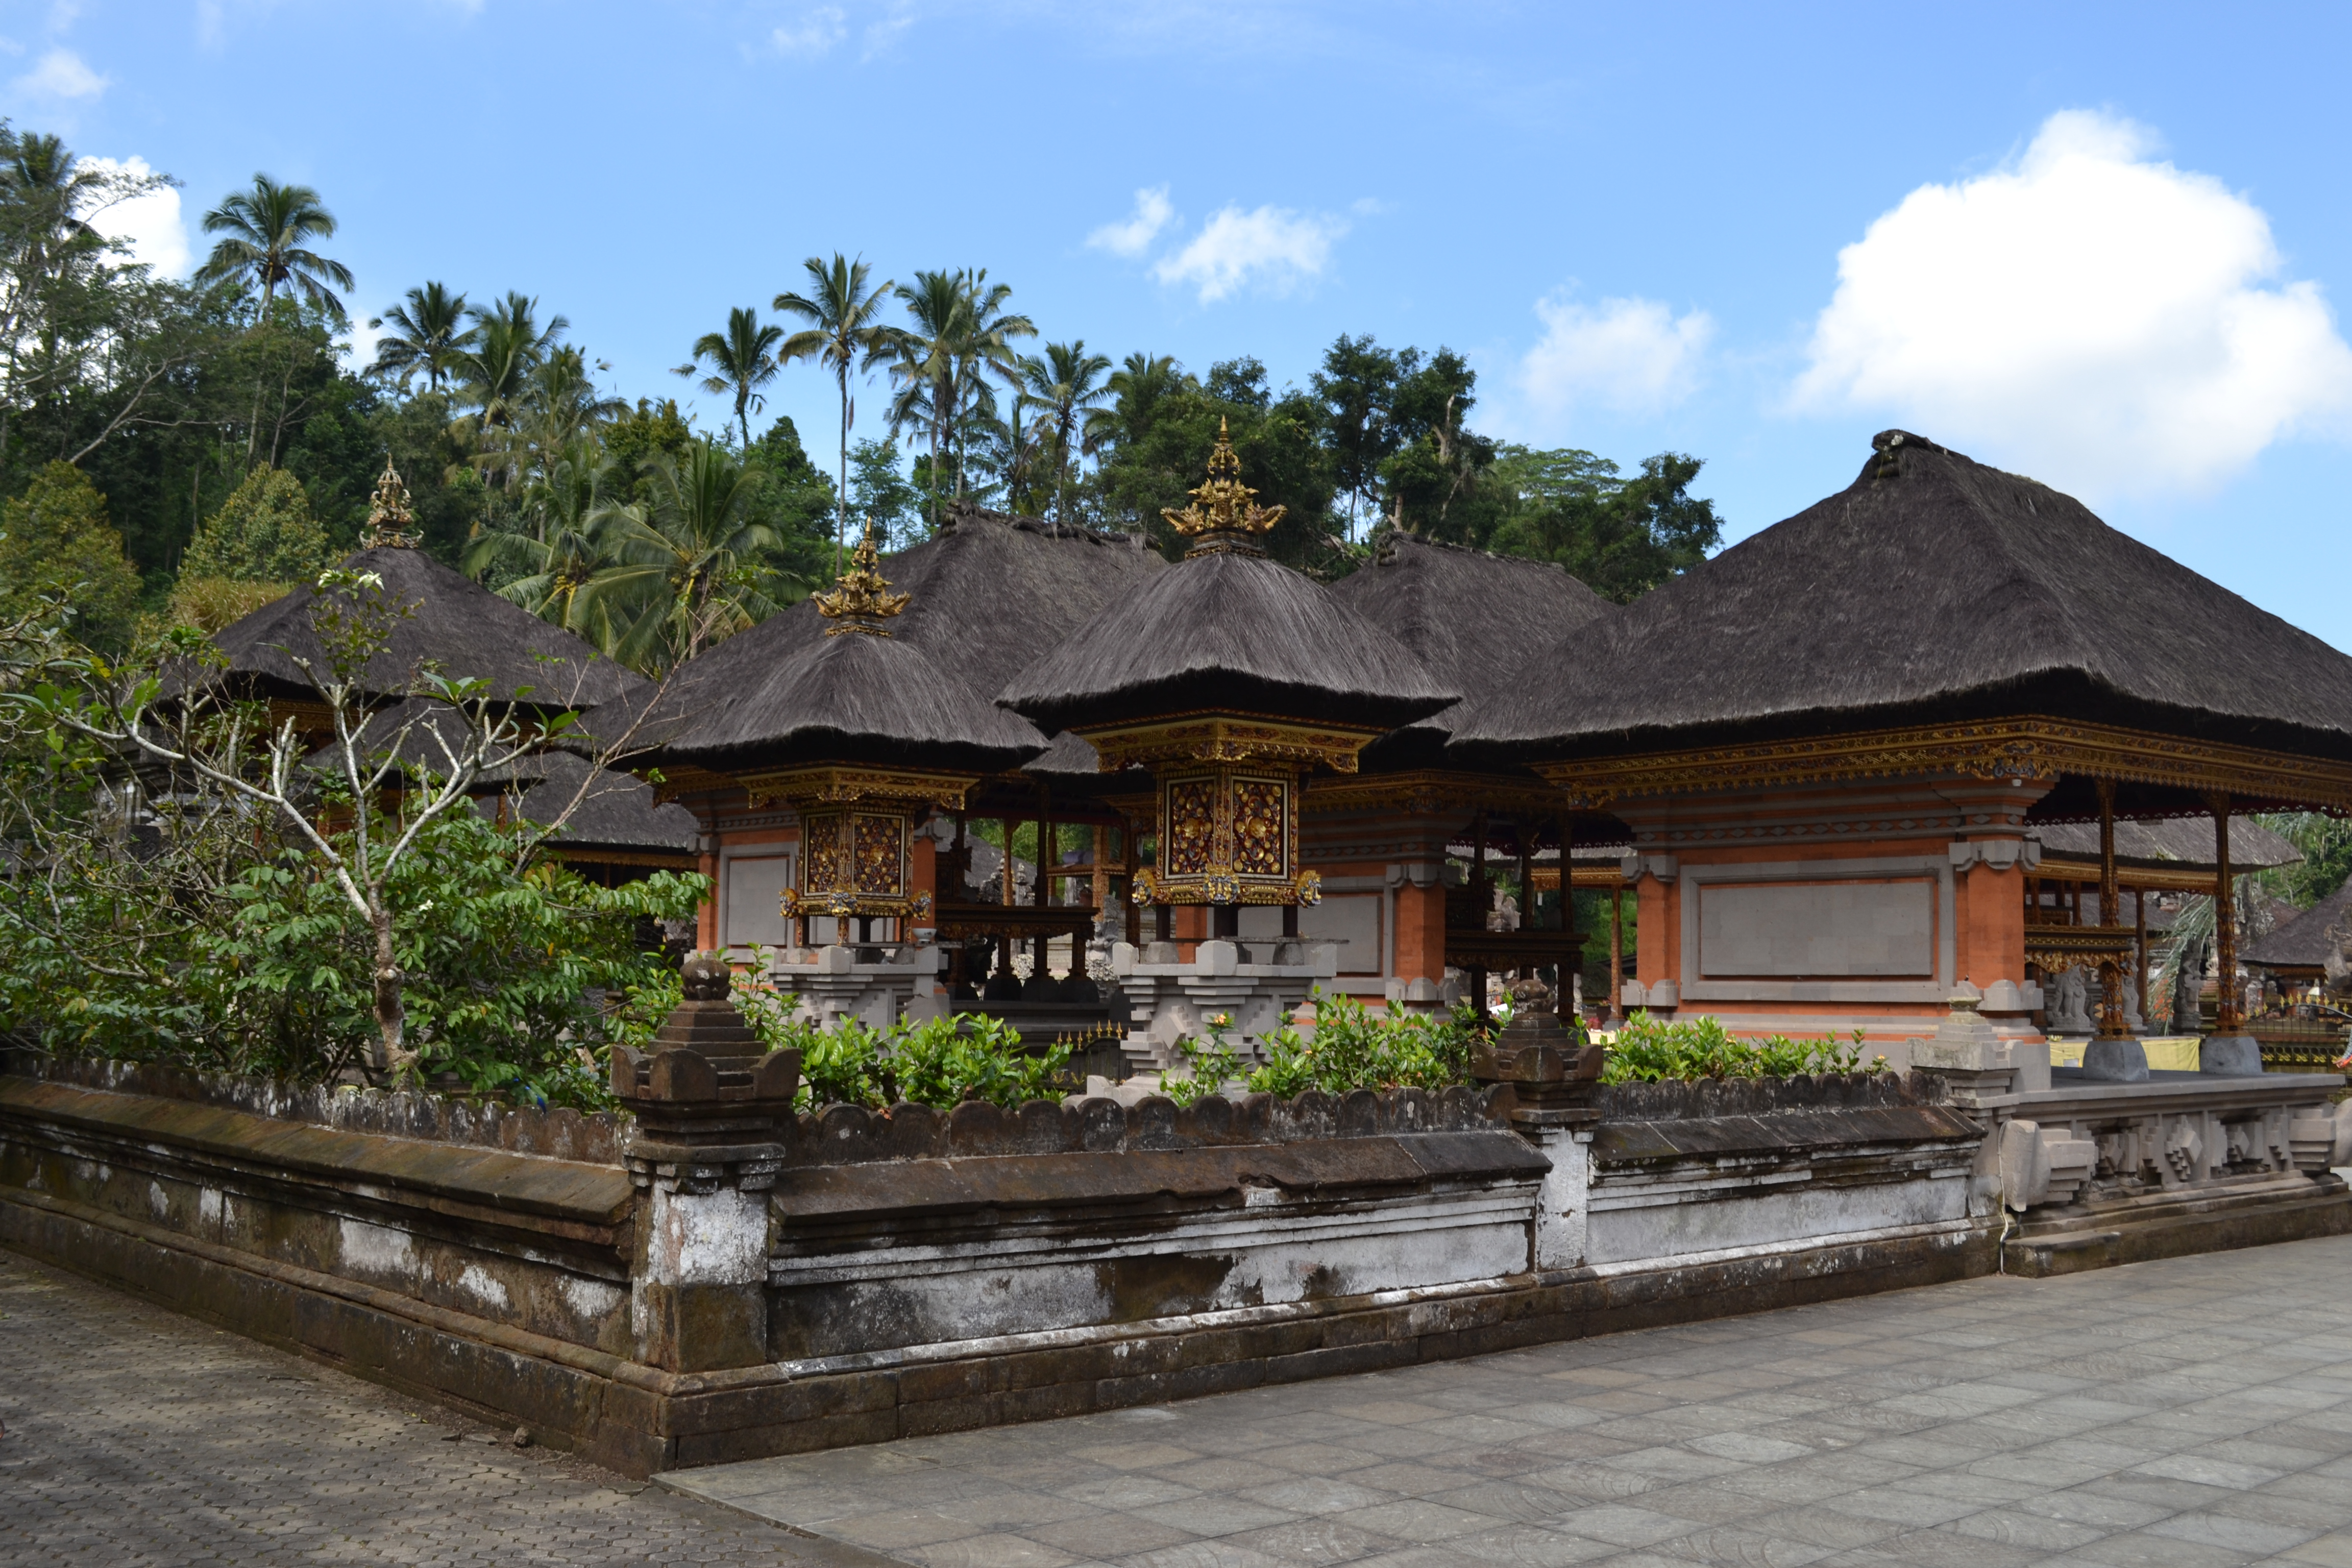 Bali Temple | Solo Travel Bali | Backpacking with Bacon